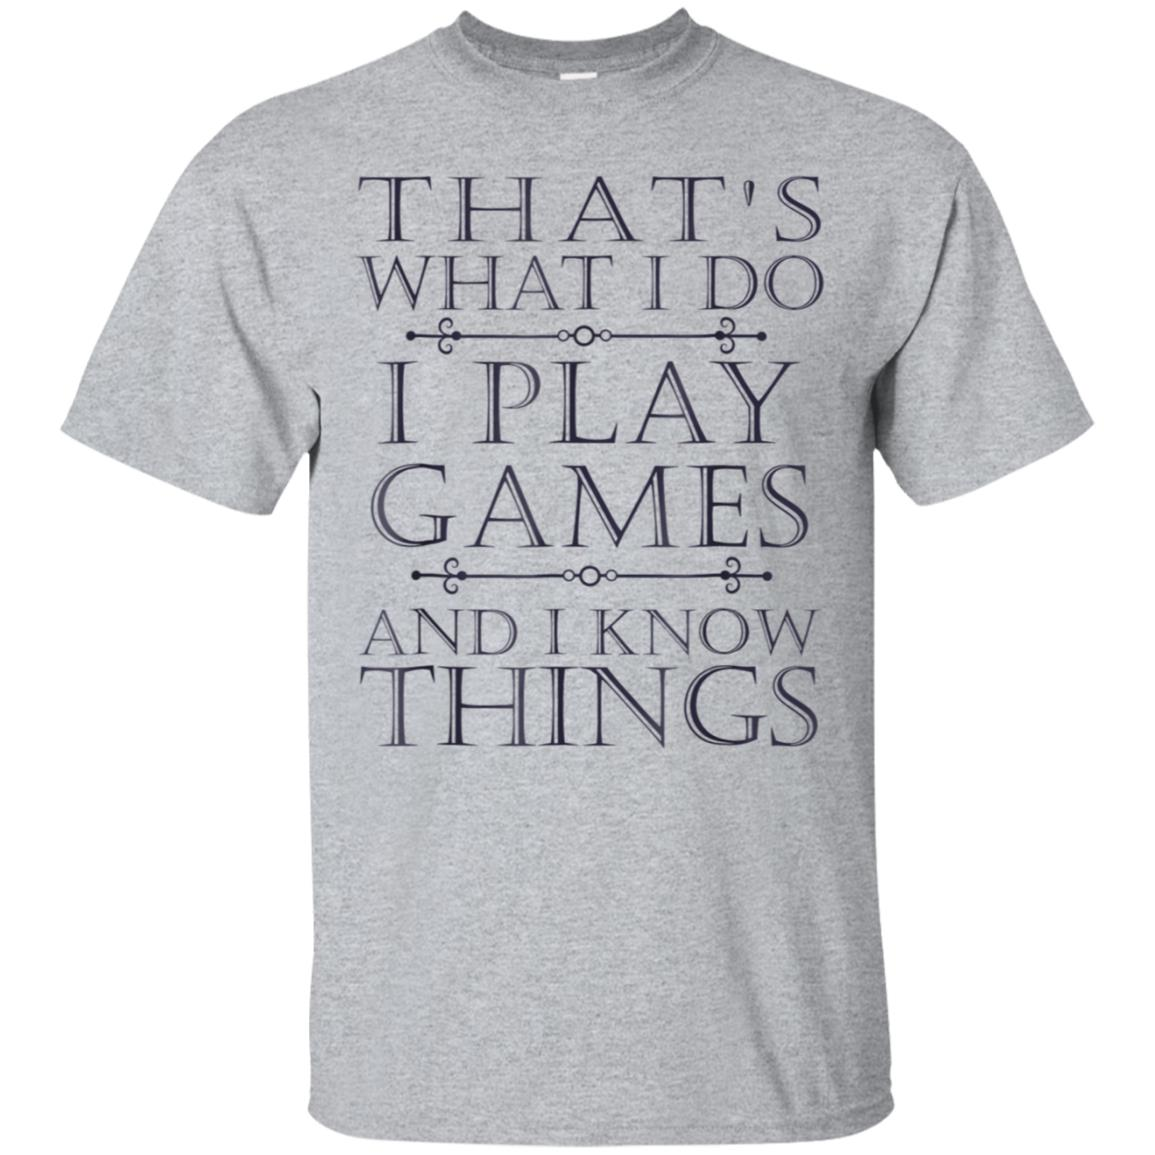 That's What I Do Game T-Shirt Funny Video Games Gift Top Tee 99promocode